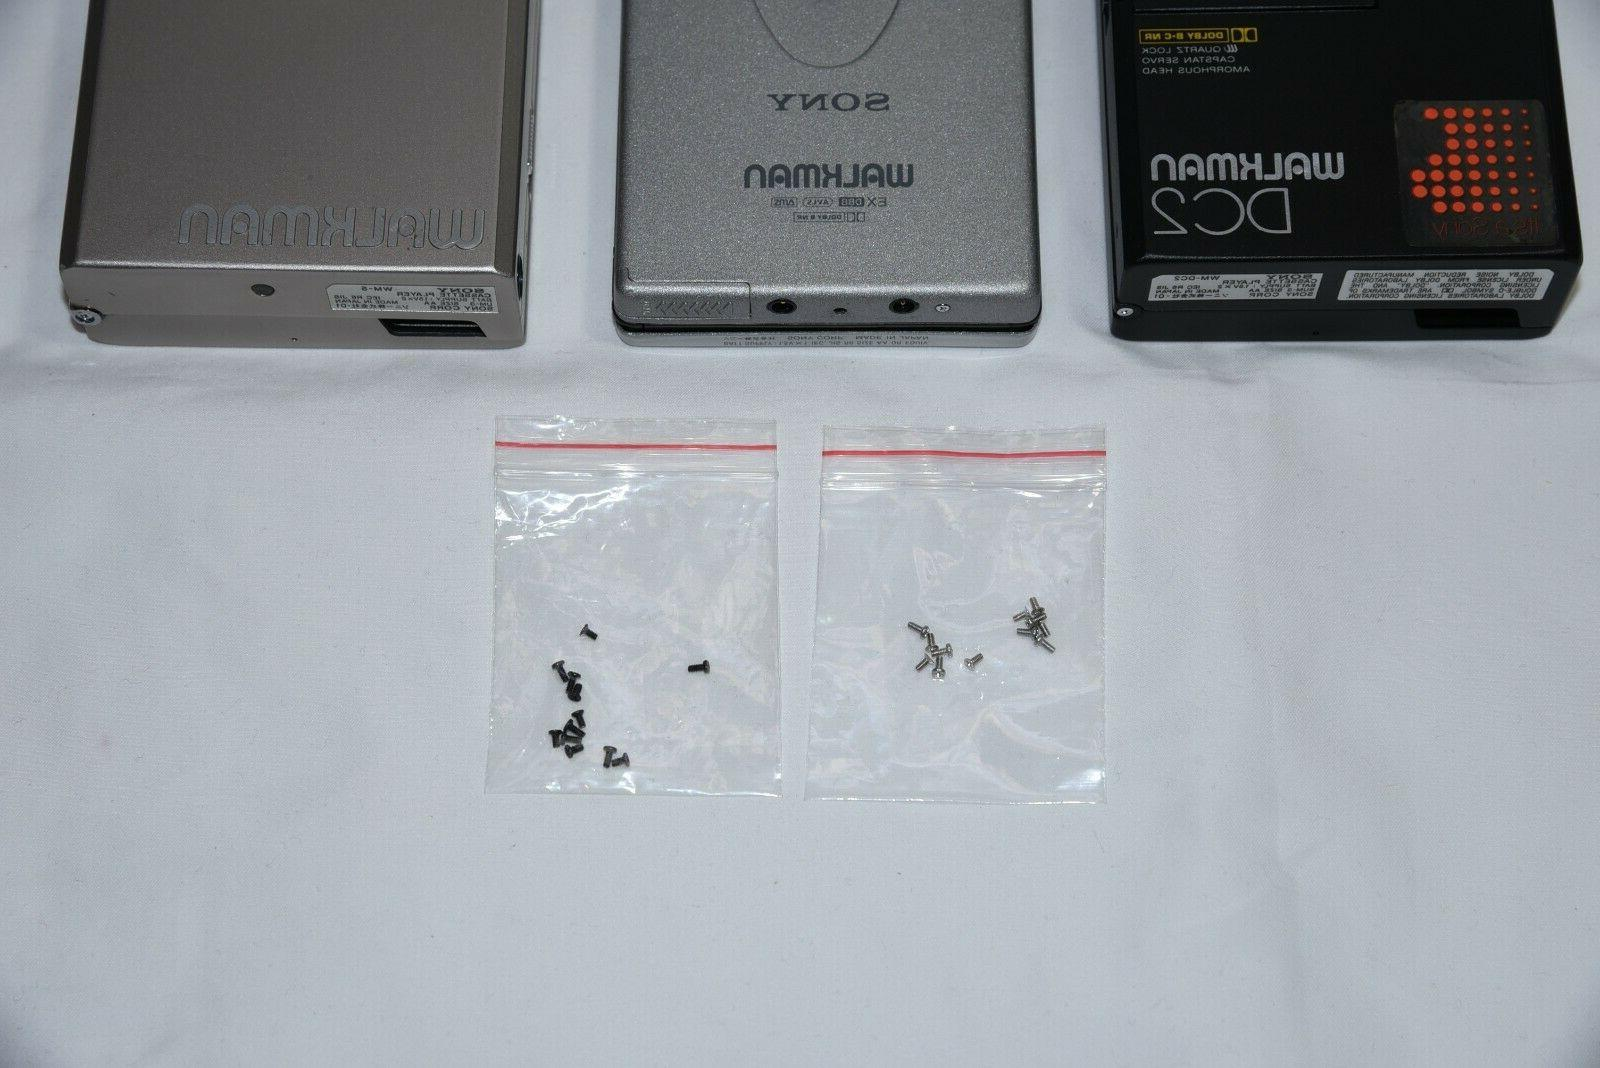 Walkman screws of 24 for players and